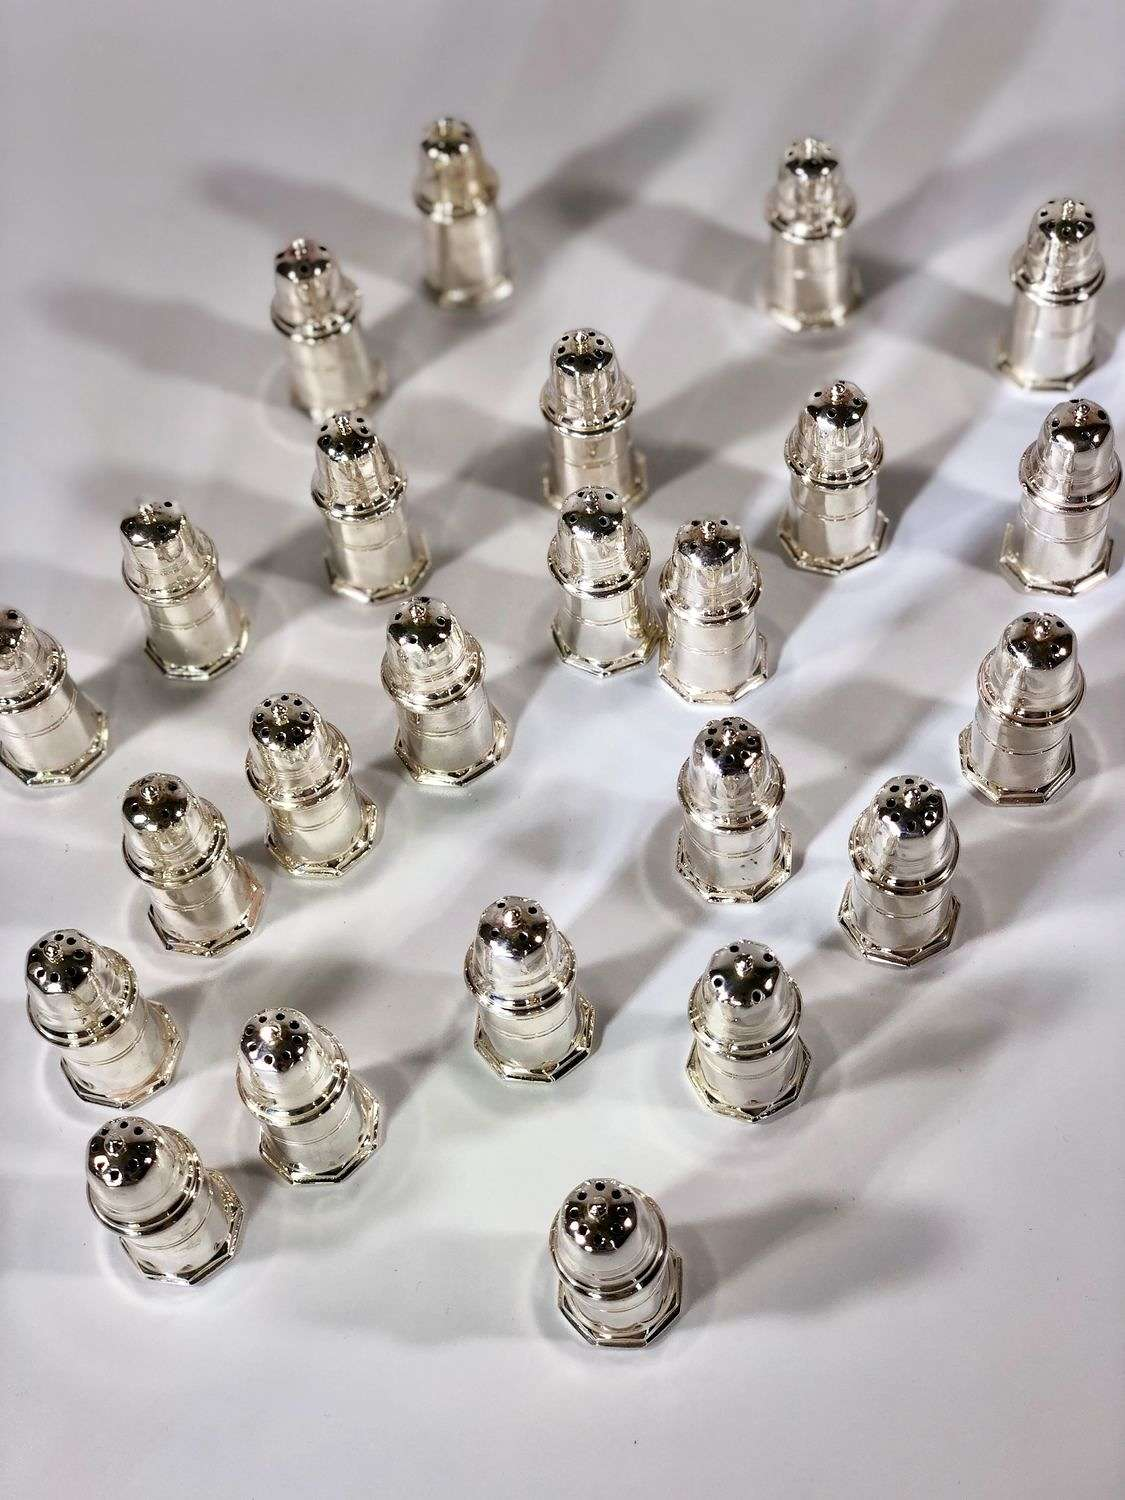 24 individual Christofle salt and pepper shakers